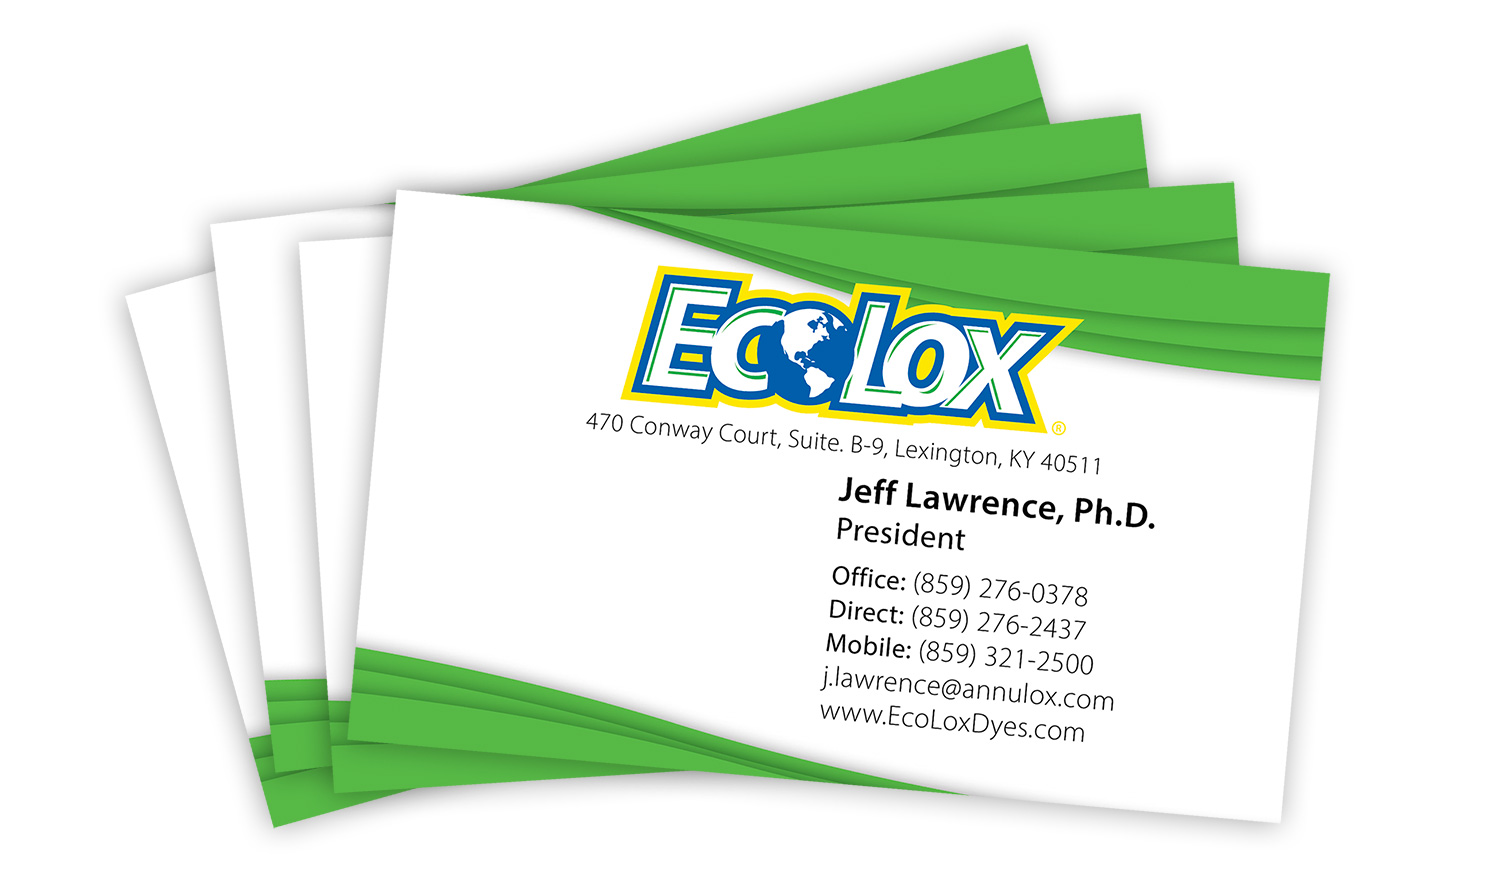 EcoLox Dyes - Business Card Design